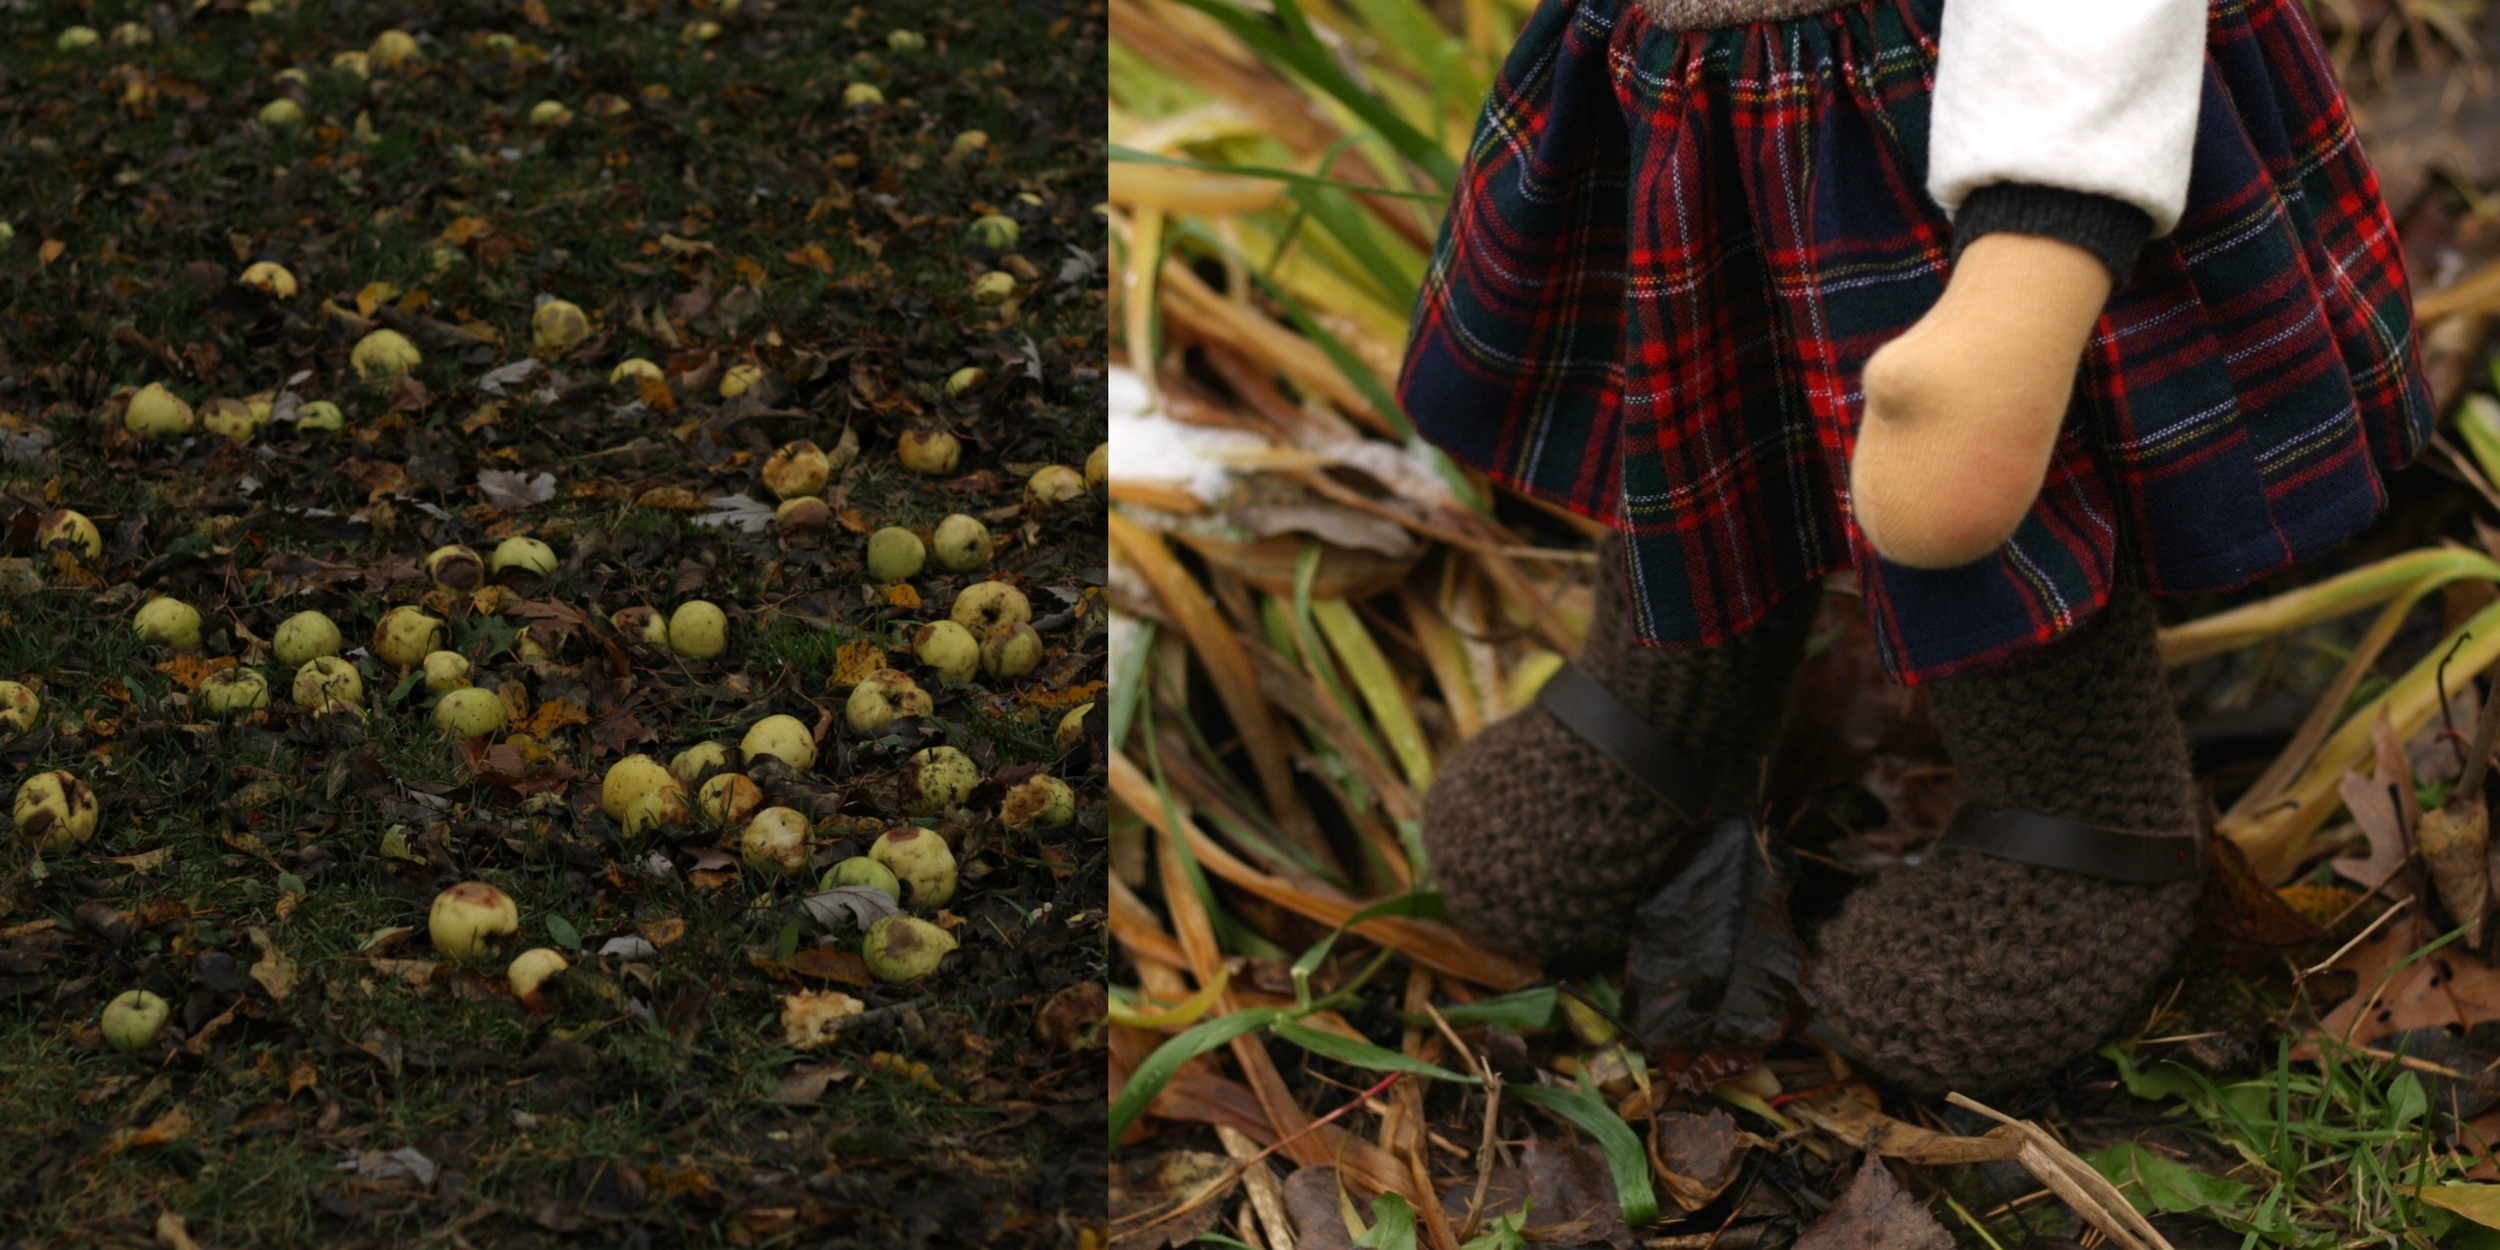 """And lots of windfall rotten apples, """"such a shame"""" said Sweet Kilda, who wanted to bake apple crumble. By Fig and Me."""